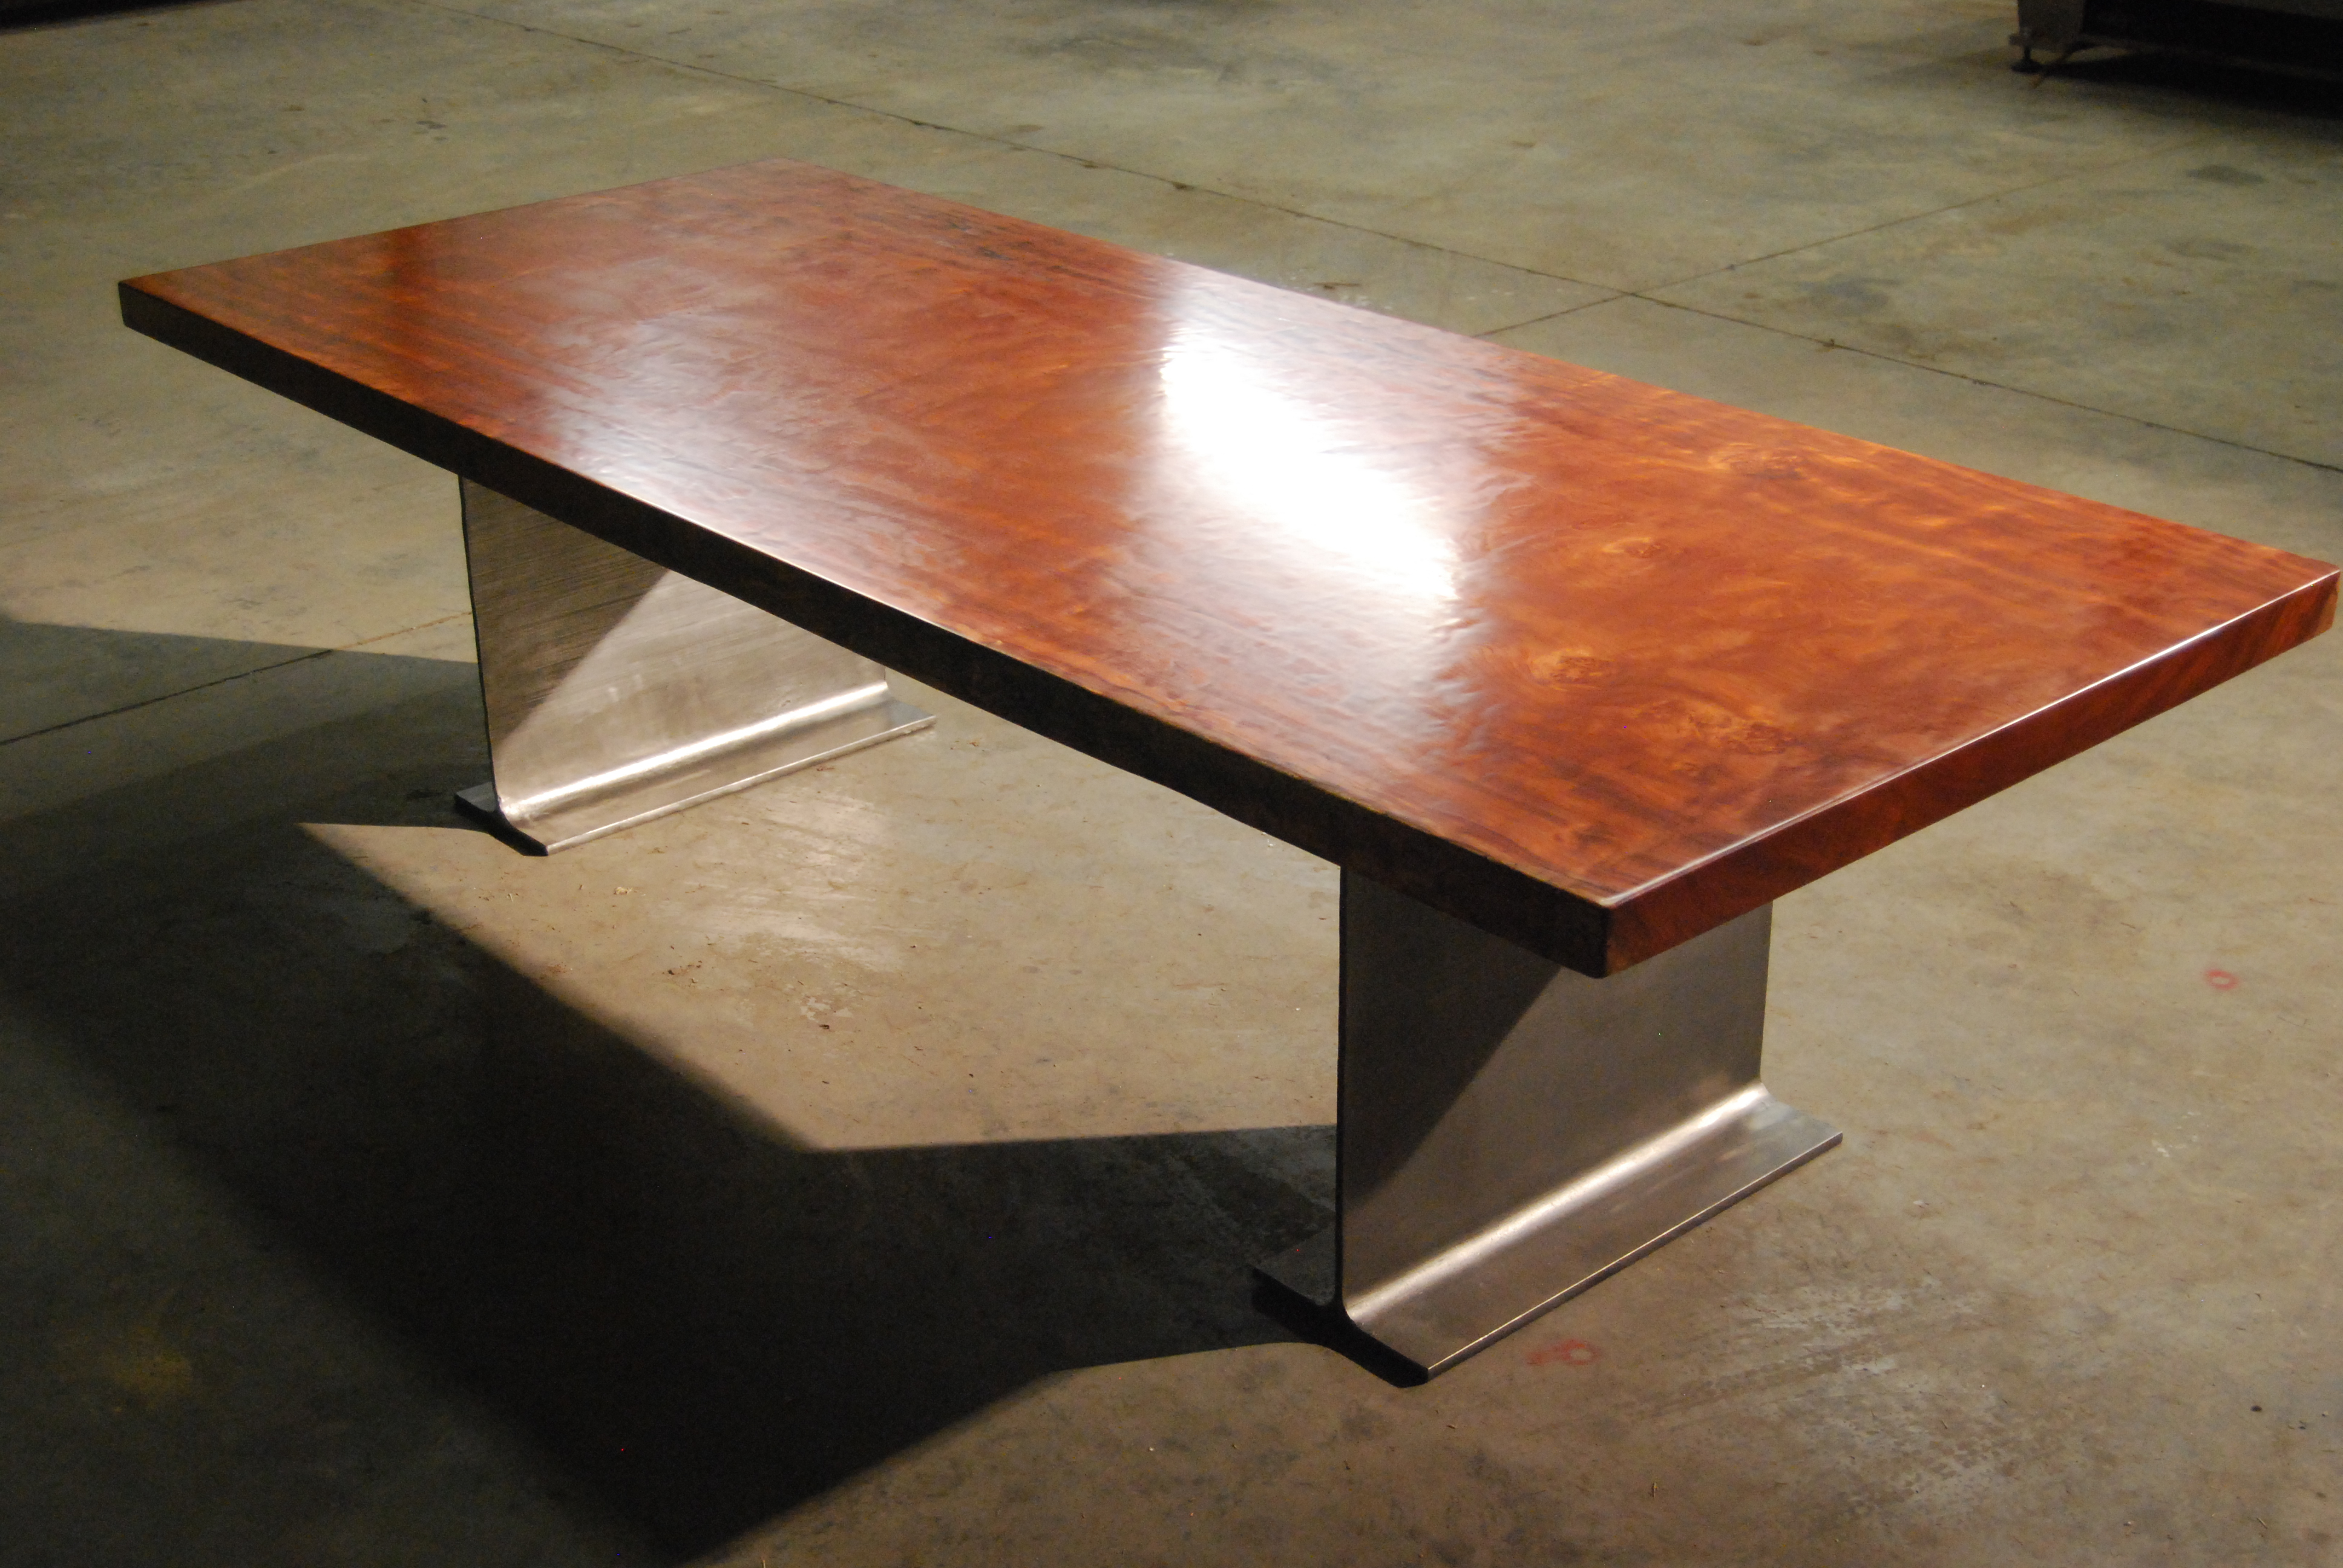 Bubinga+Table+Steel+Base+finished+with+Odies+Oil.jpg